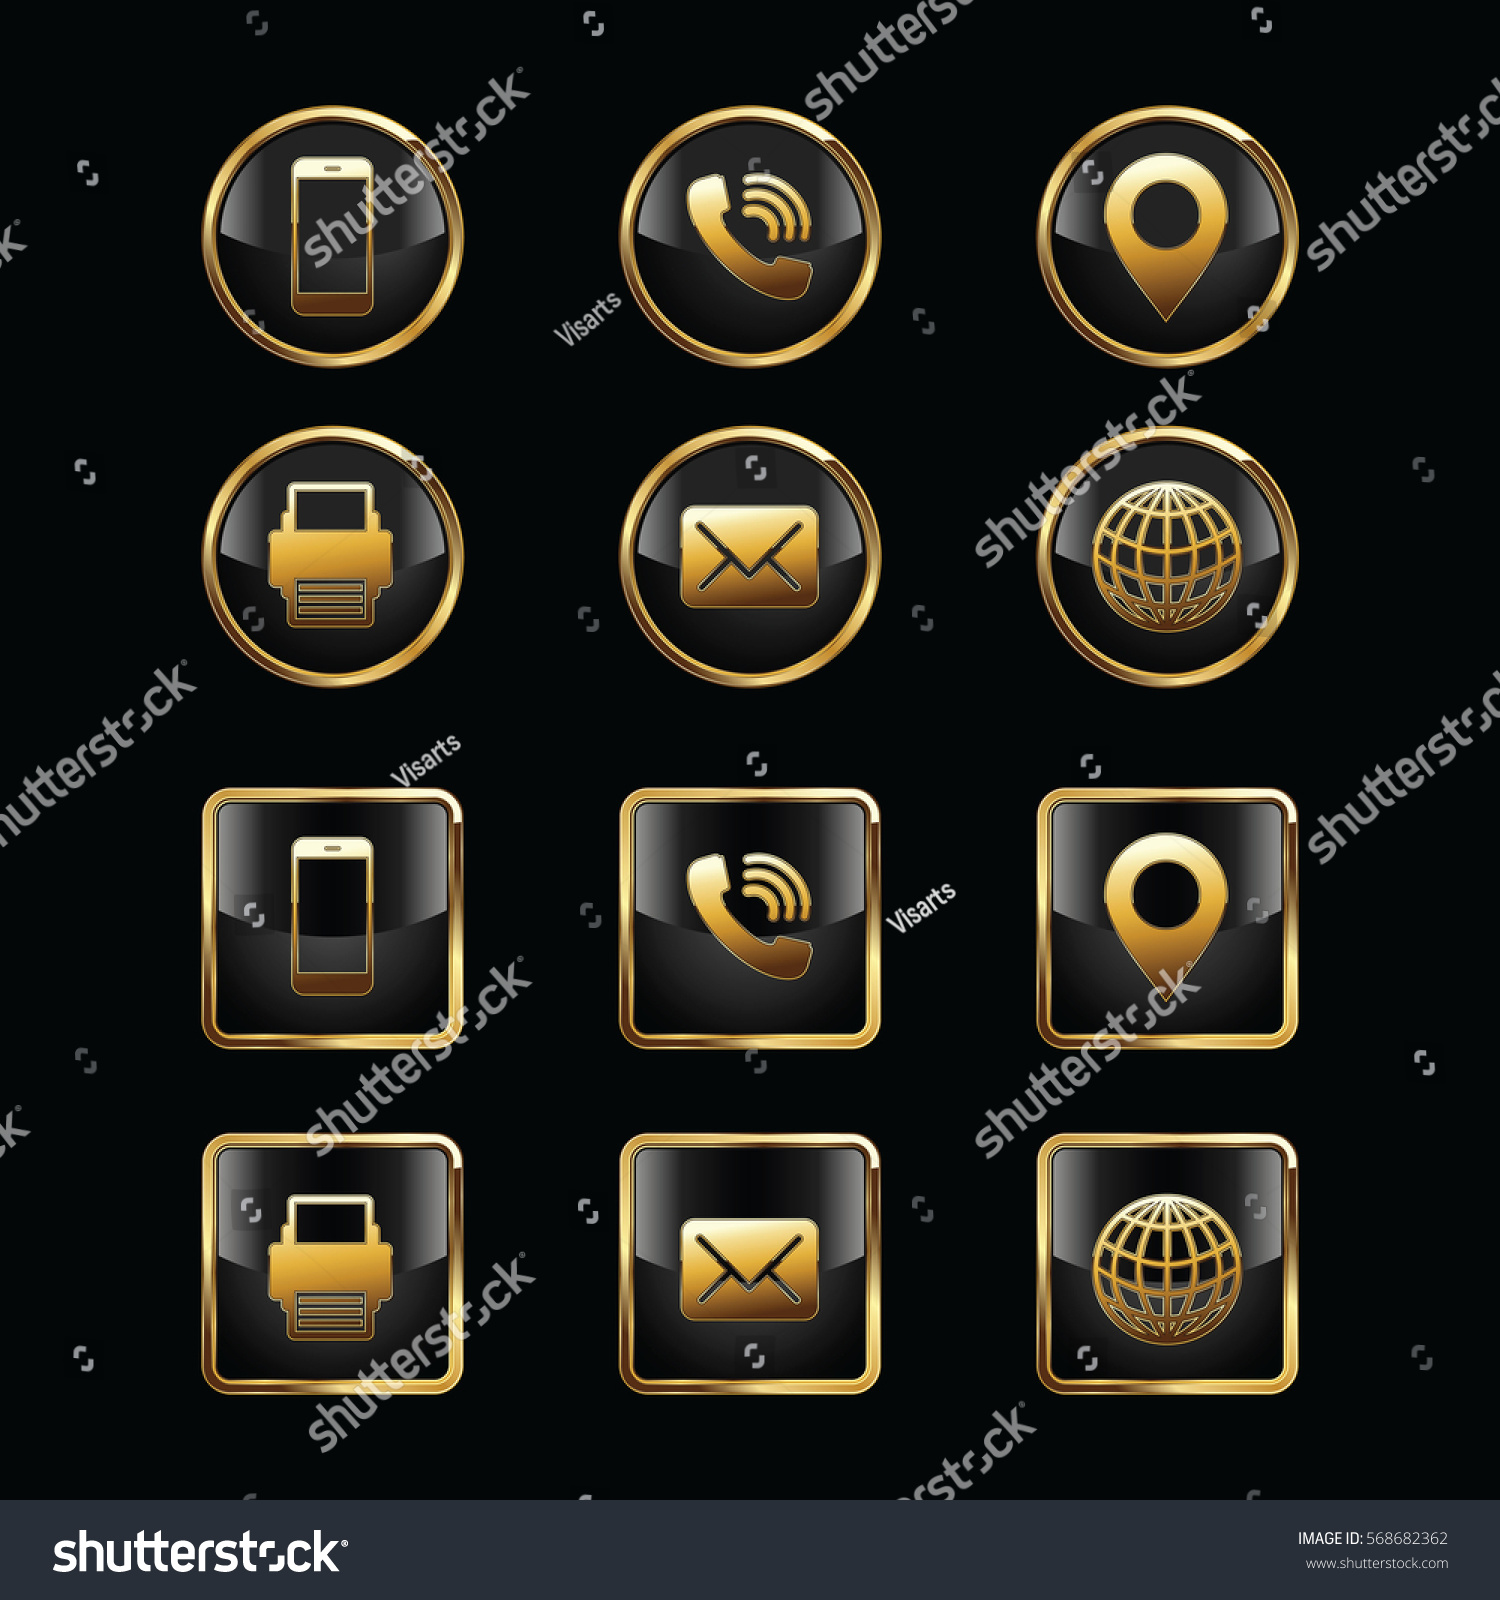 Business Card Icon Set Web Icons Stock Vector (2018) 568682362 ...